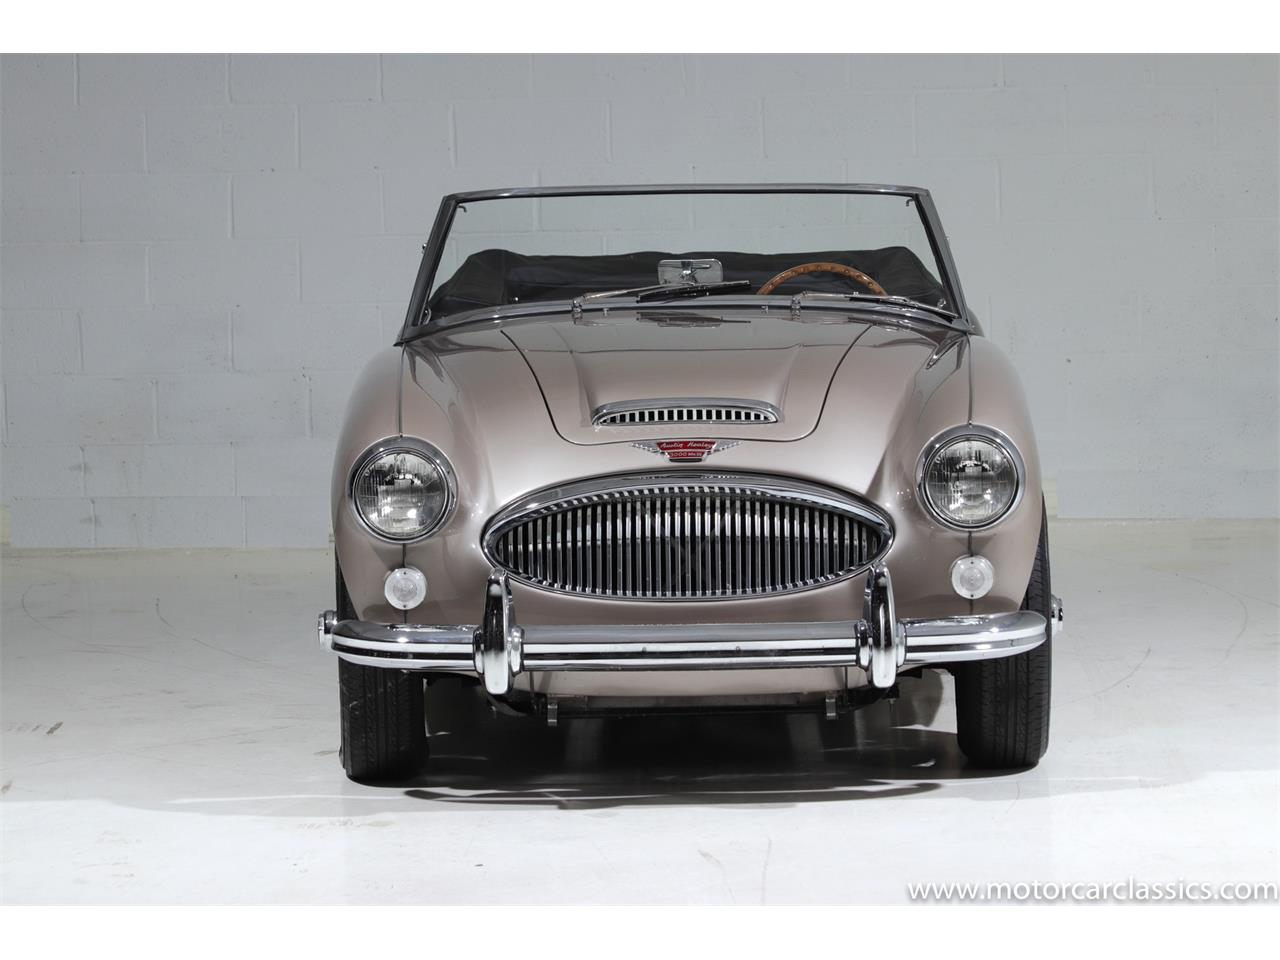 1964 Austin-Healey 3000 for sale in Farmingdale, NY – photo 3